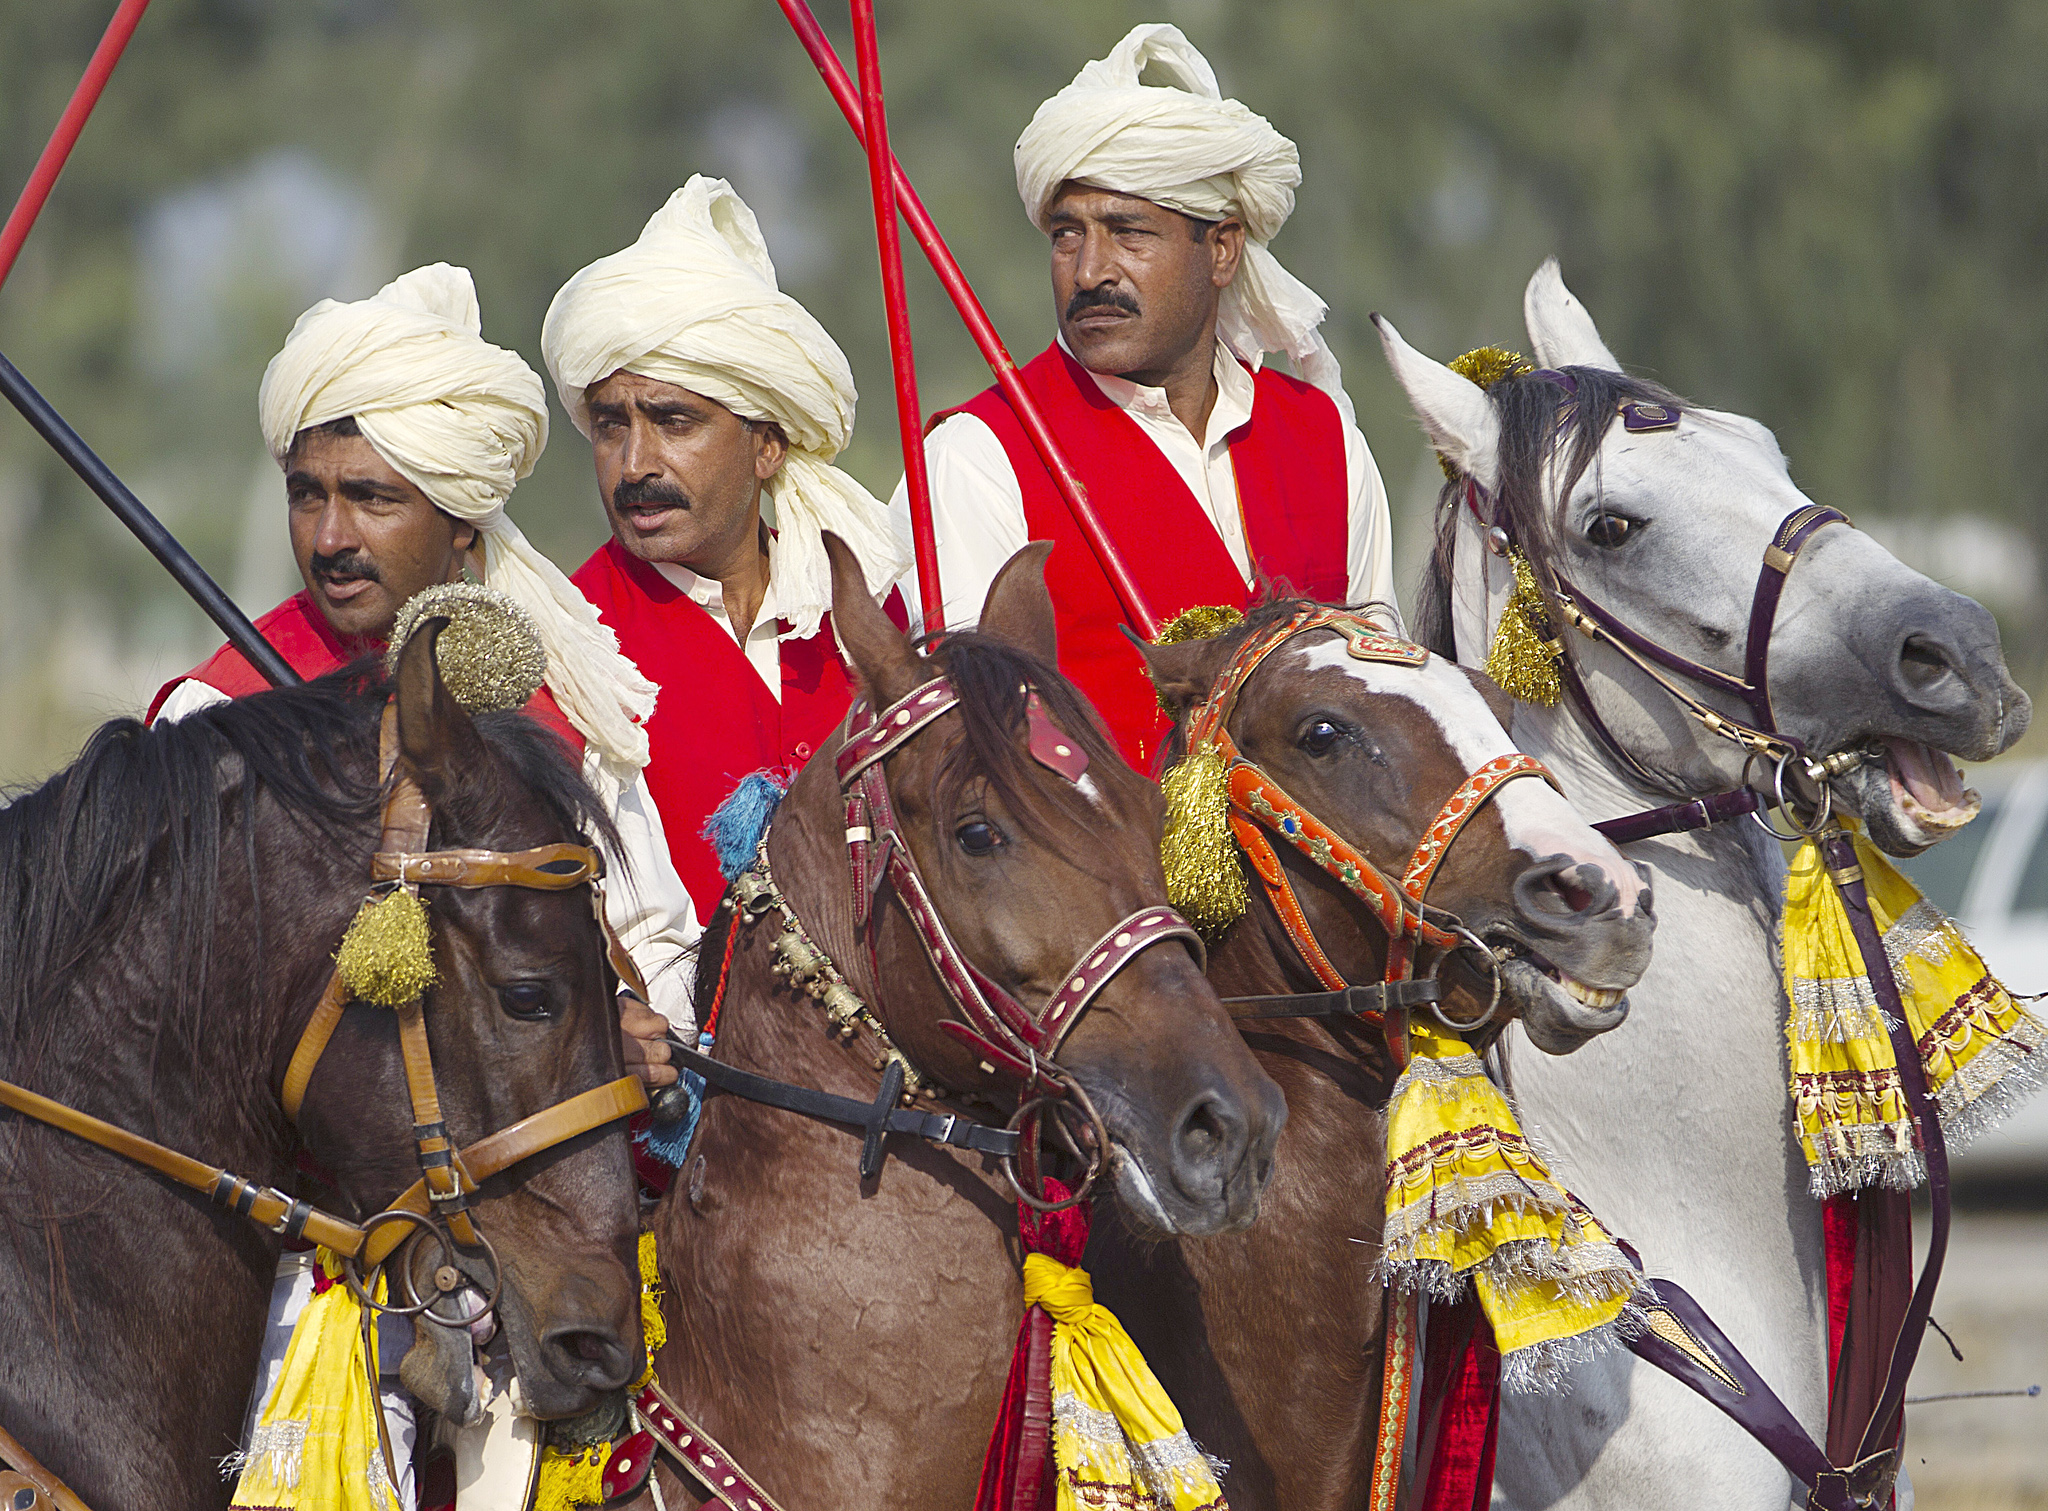 Pakistani horsemen get ready for a race during a tent pegging competition in Sangjani near Islamabad, Pakistan, Thursday, Oct. 24, 2013.(AP Photo/B.K. Bangash)